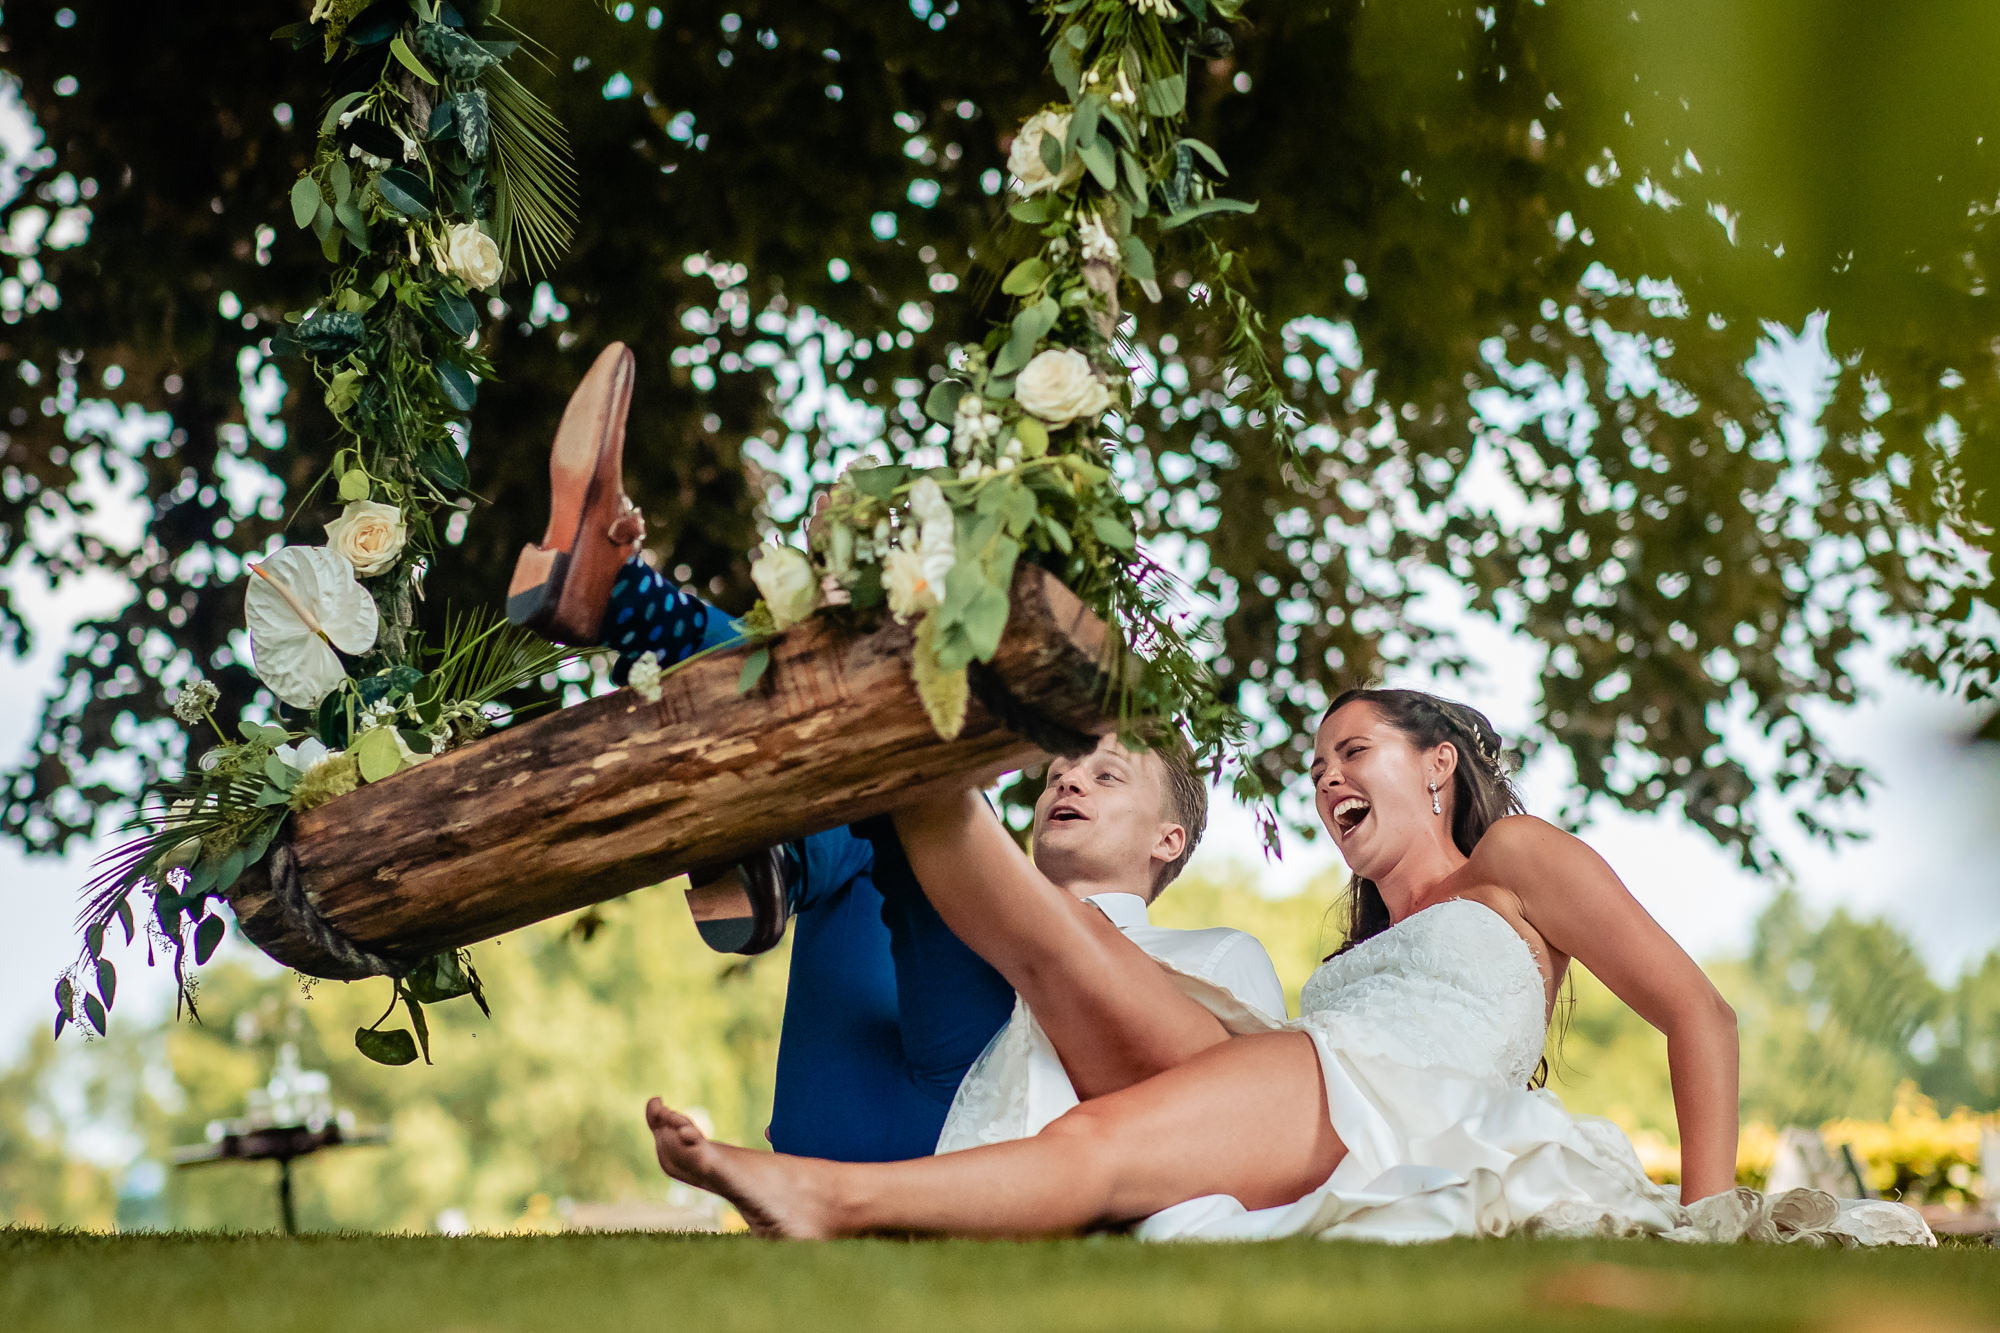 Couple falling off swing laughing photo by Eppel Photography